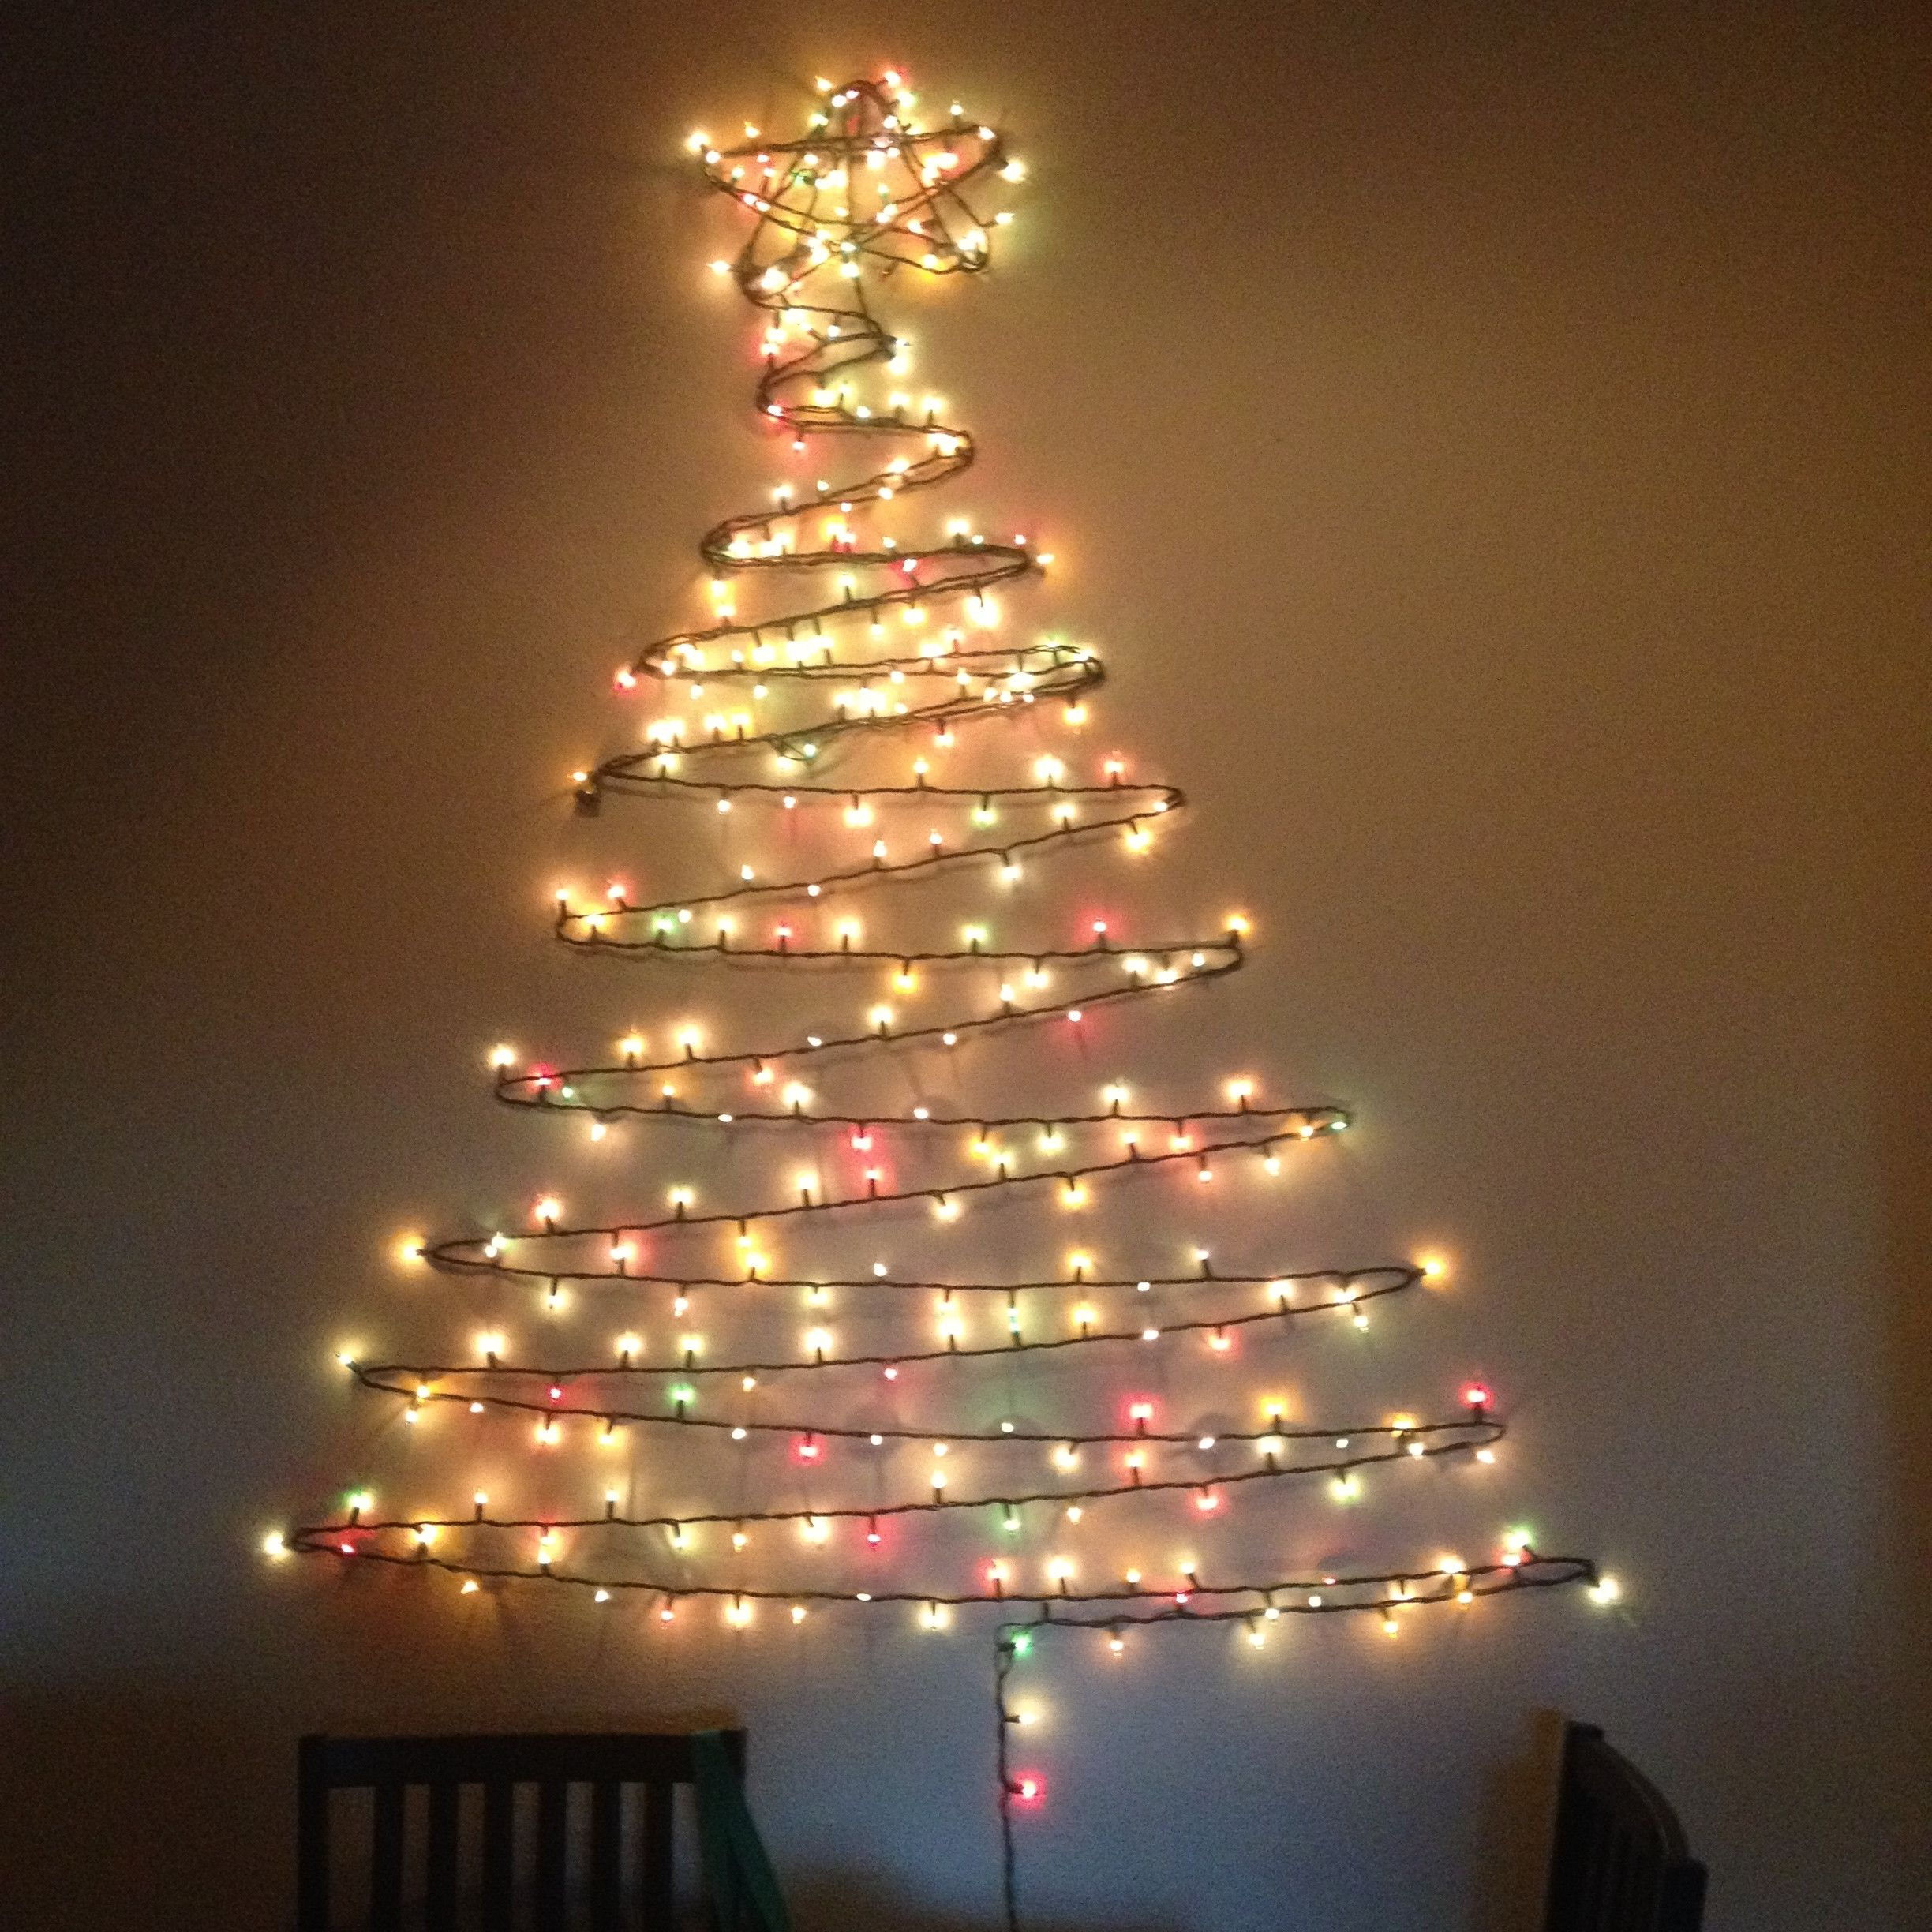 11 Last Minute Diy Christmas Trees Wall Christmas Tree Best Christmas Lights Christmas Lights